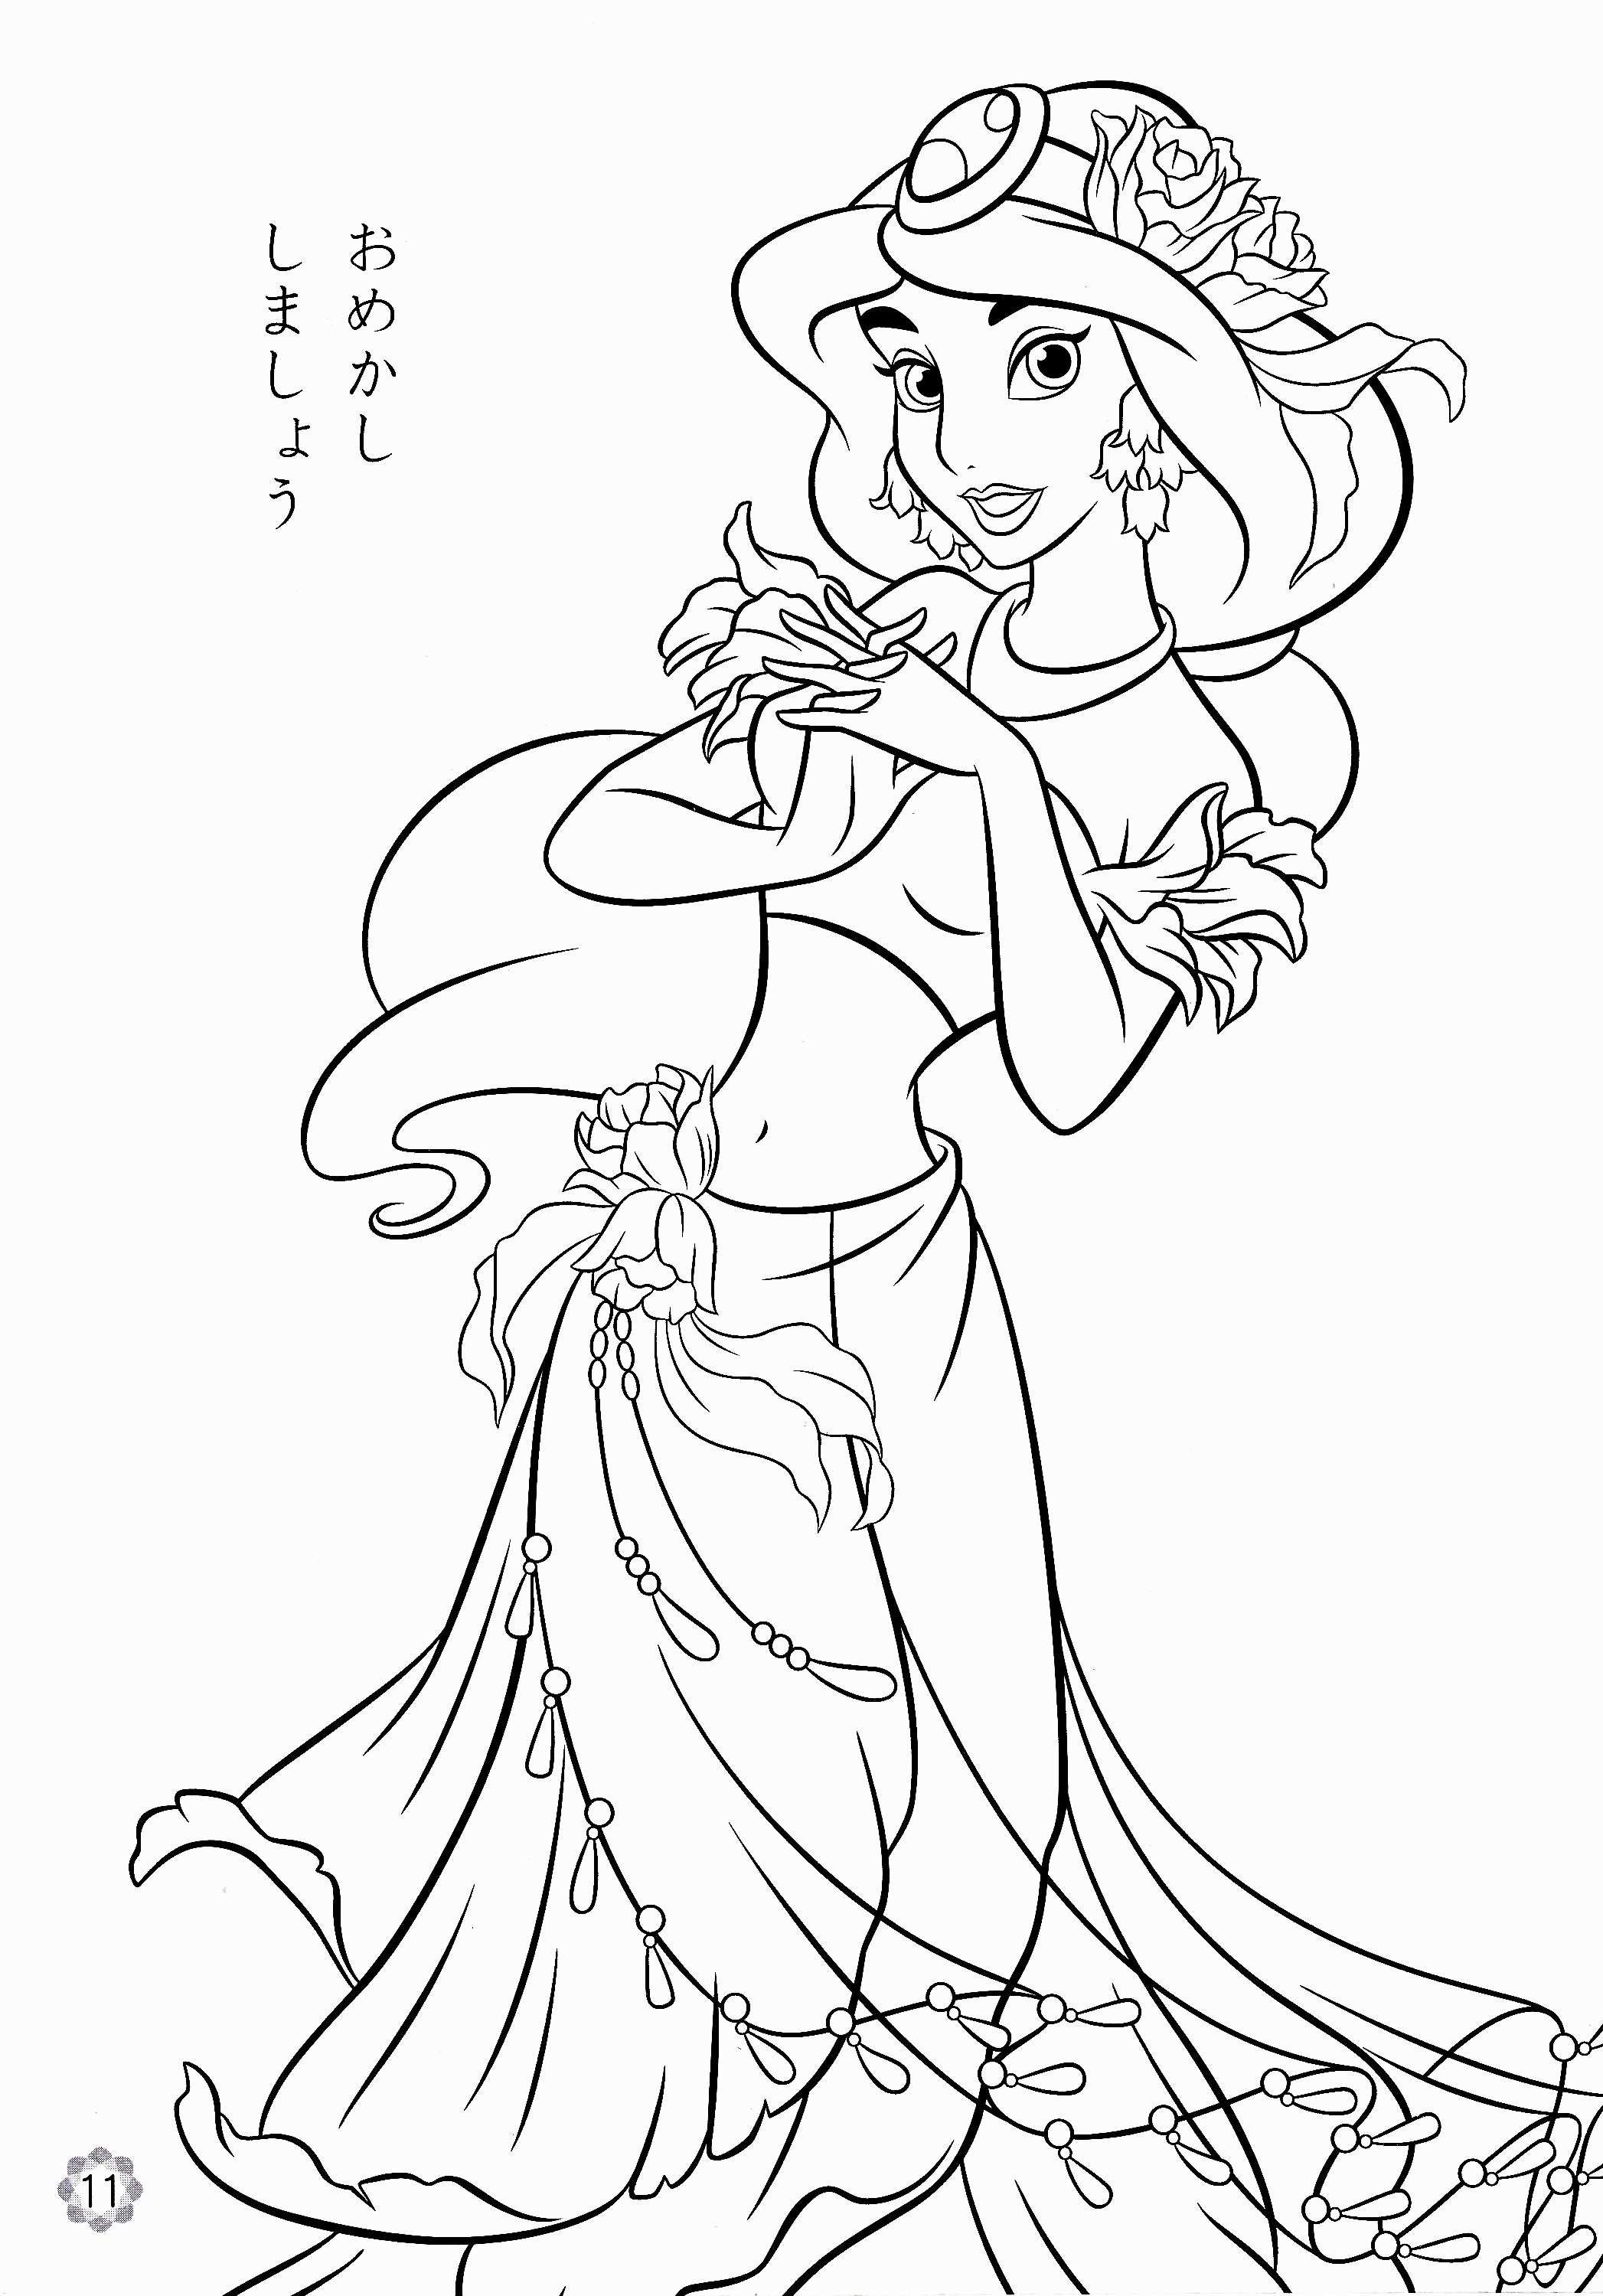 Free Coloring Pages Disney Princess Jasmine From The Thousand Images On The Web Ab Disney Princess Coloring Pages Ariel Coloring Pages Mermaid Coloring Pages